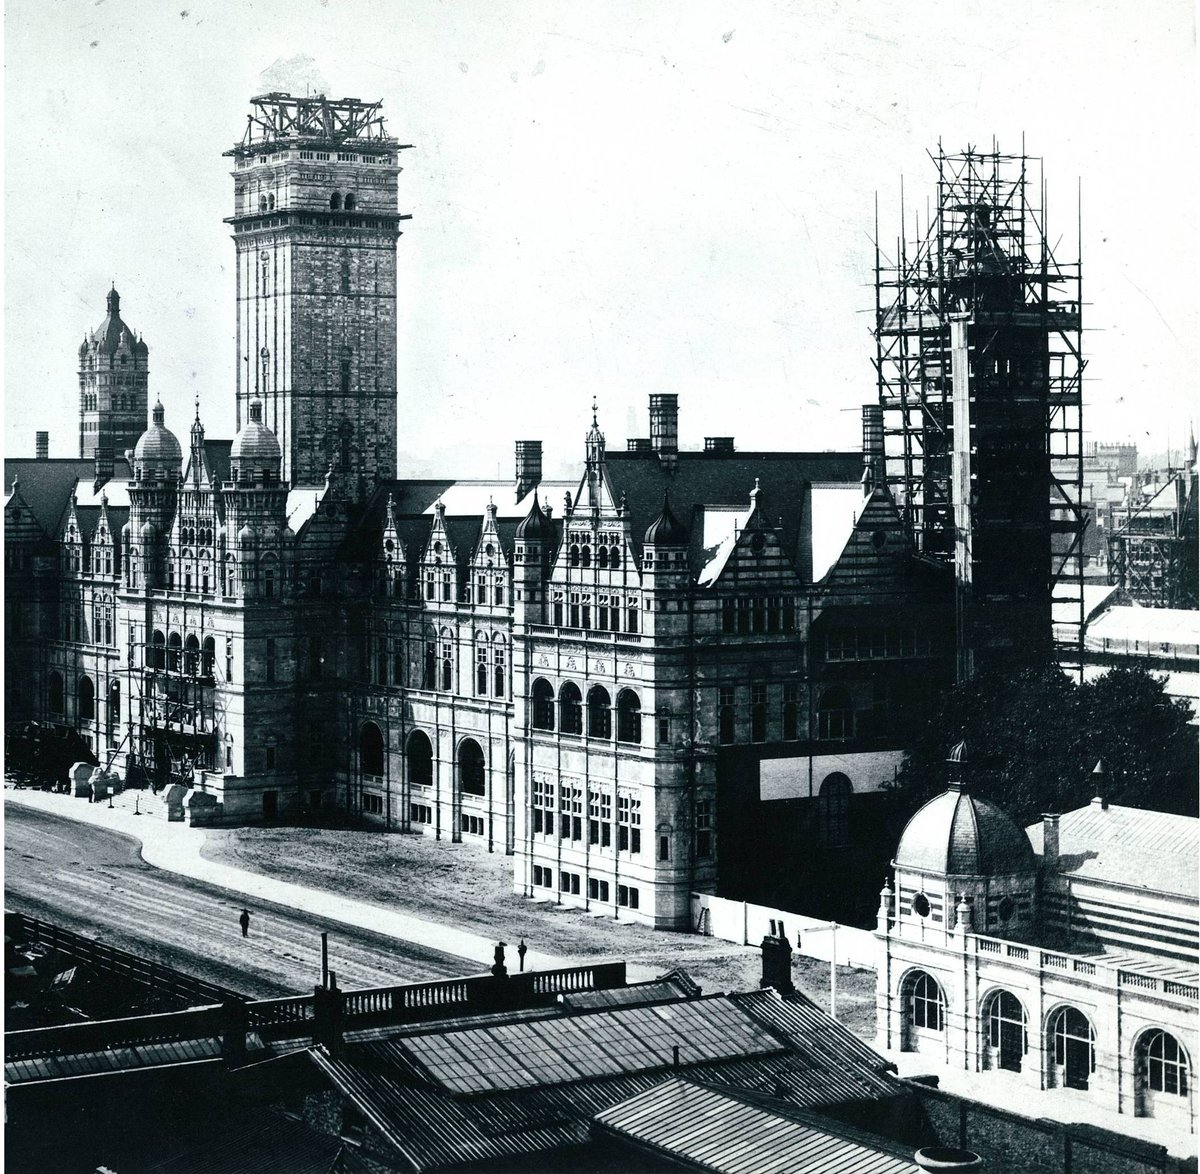 Imperial college on twitter the queens tower was originally one the queens tower was originally one of three towers all part of the imperial institute heres a photo from our archives of the tower under construction altavistaventures Images